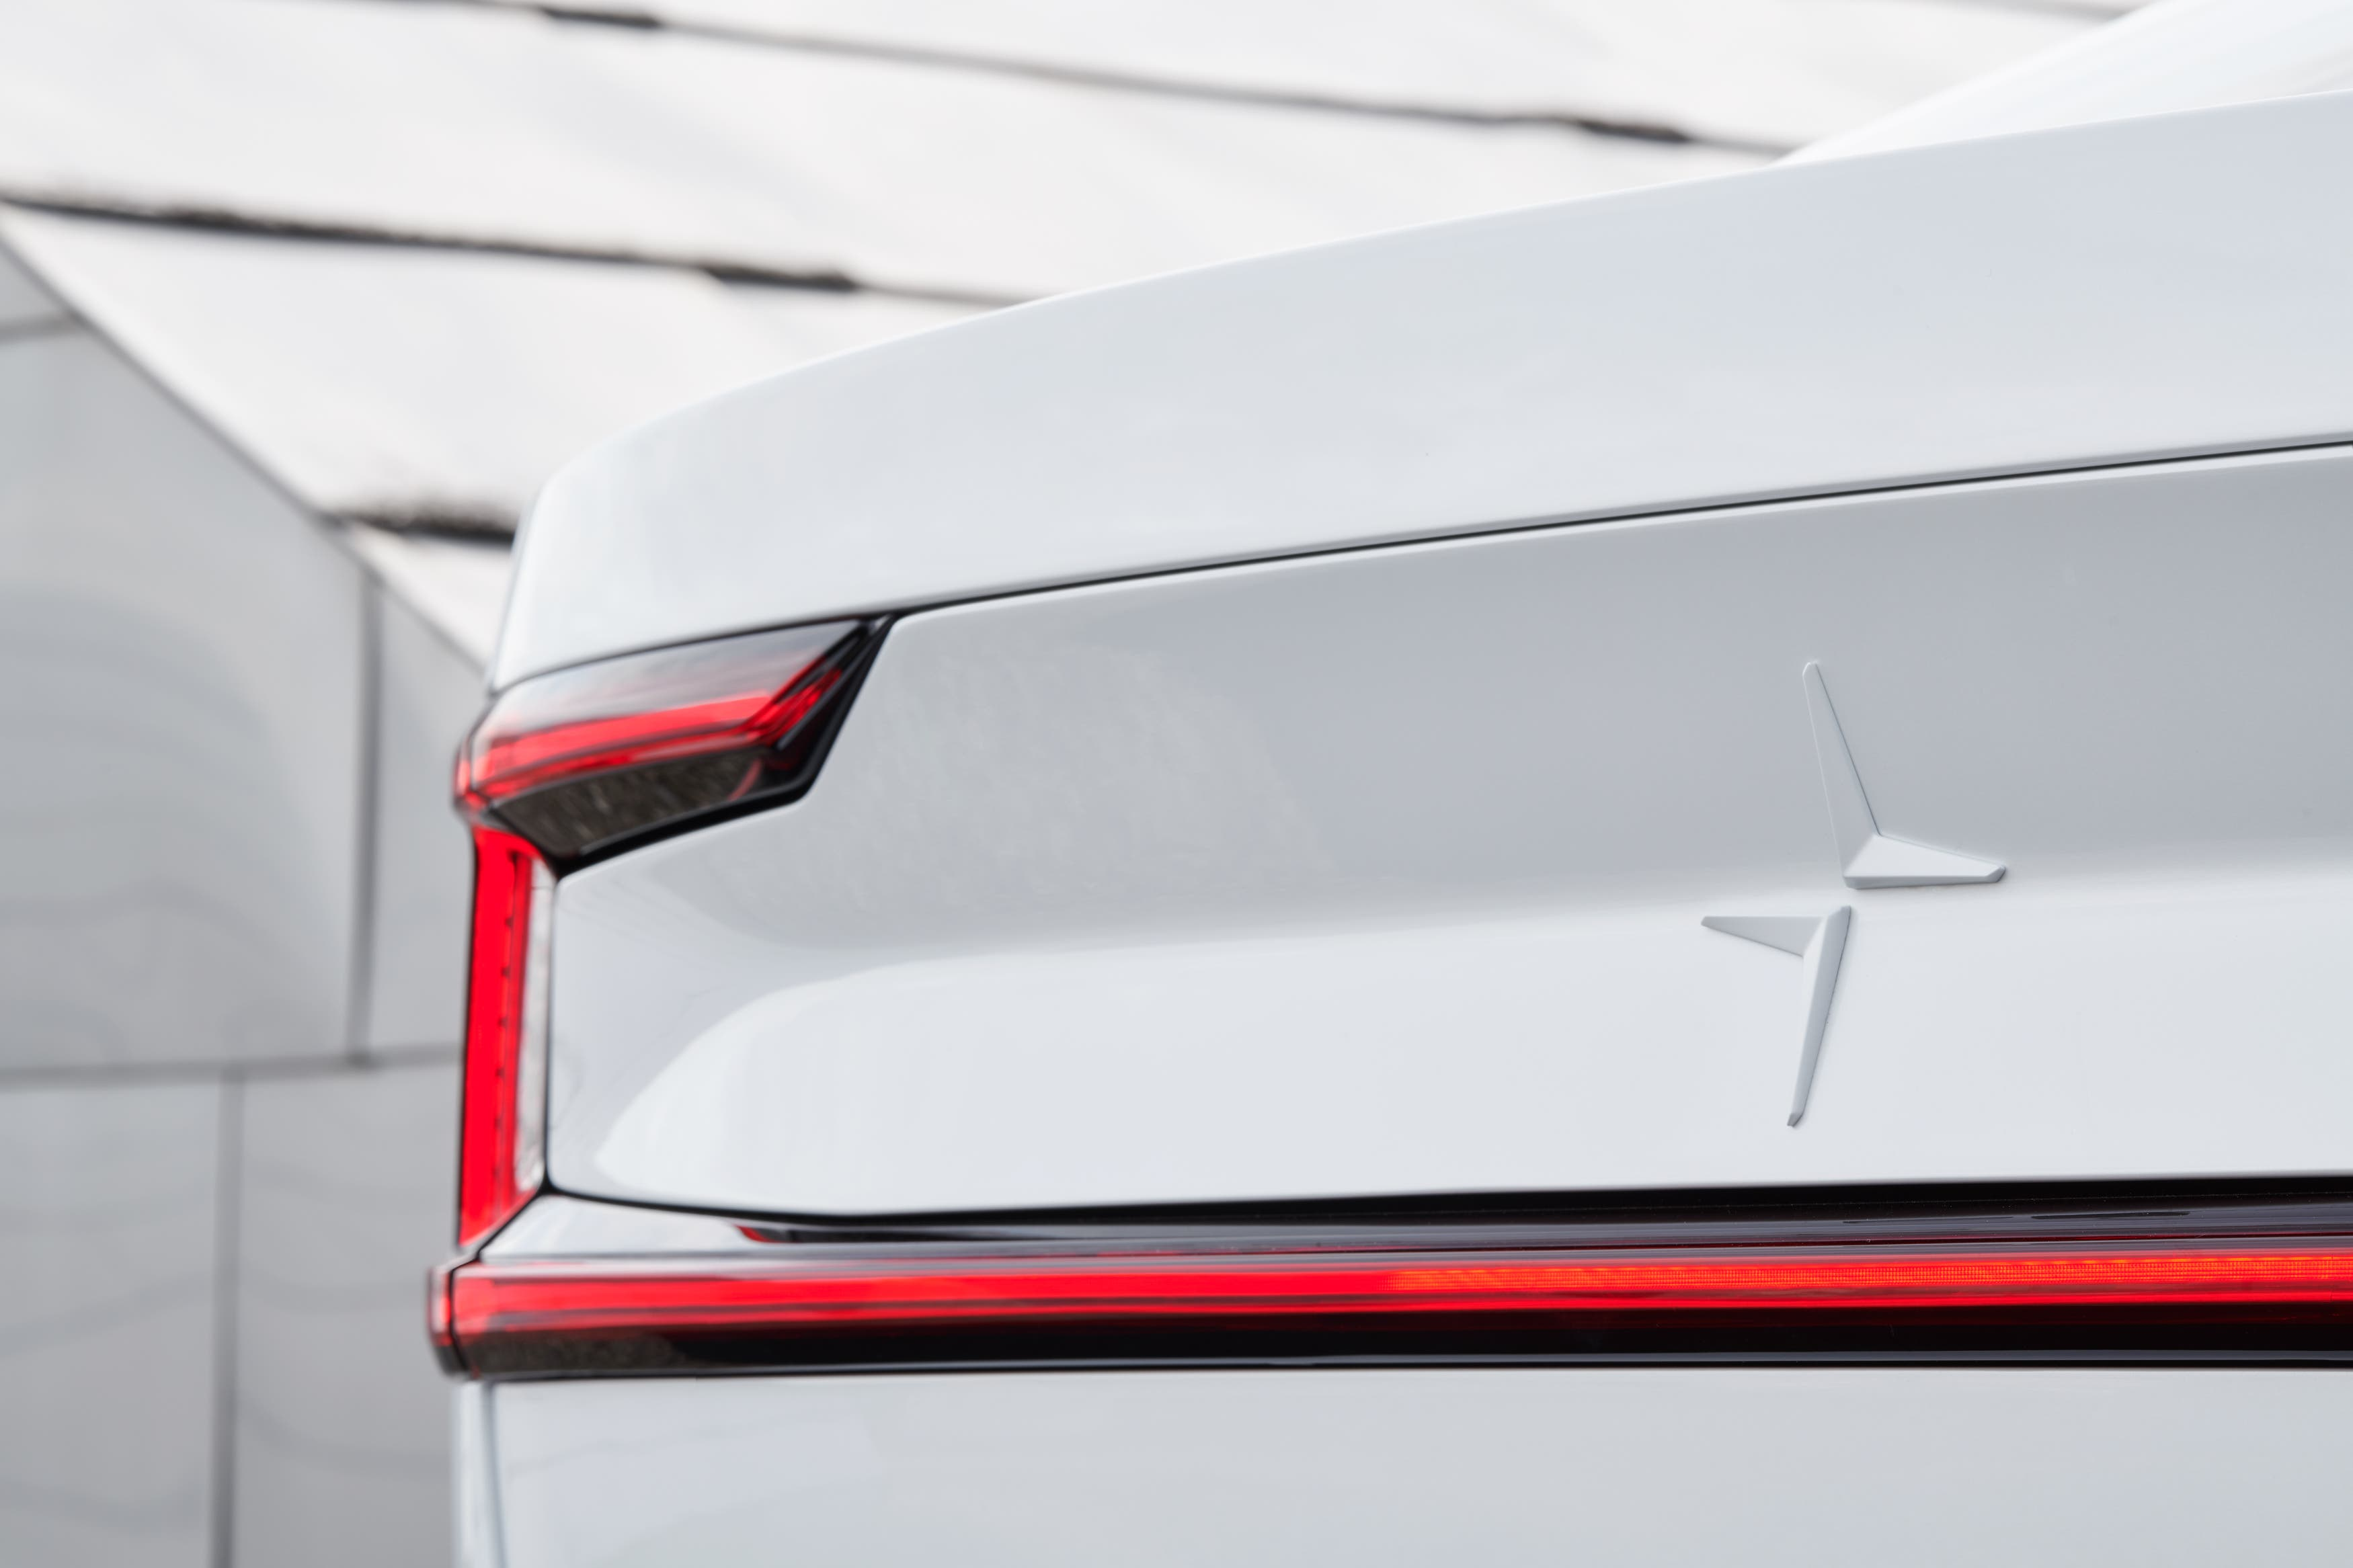 Volvo's Polestar unveils electric auto touted as Tesla rival